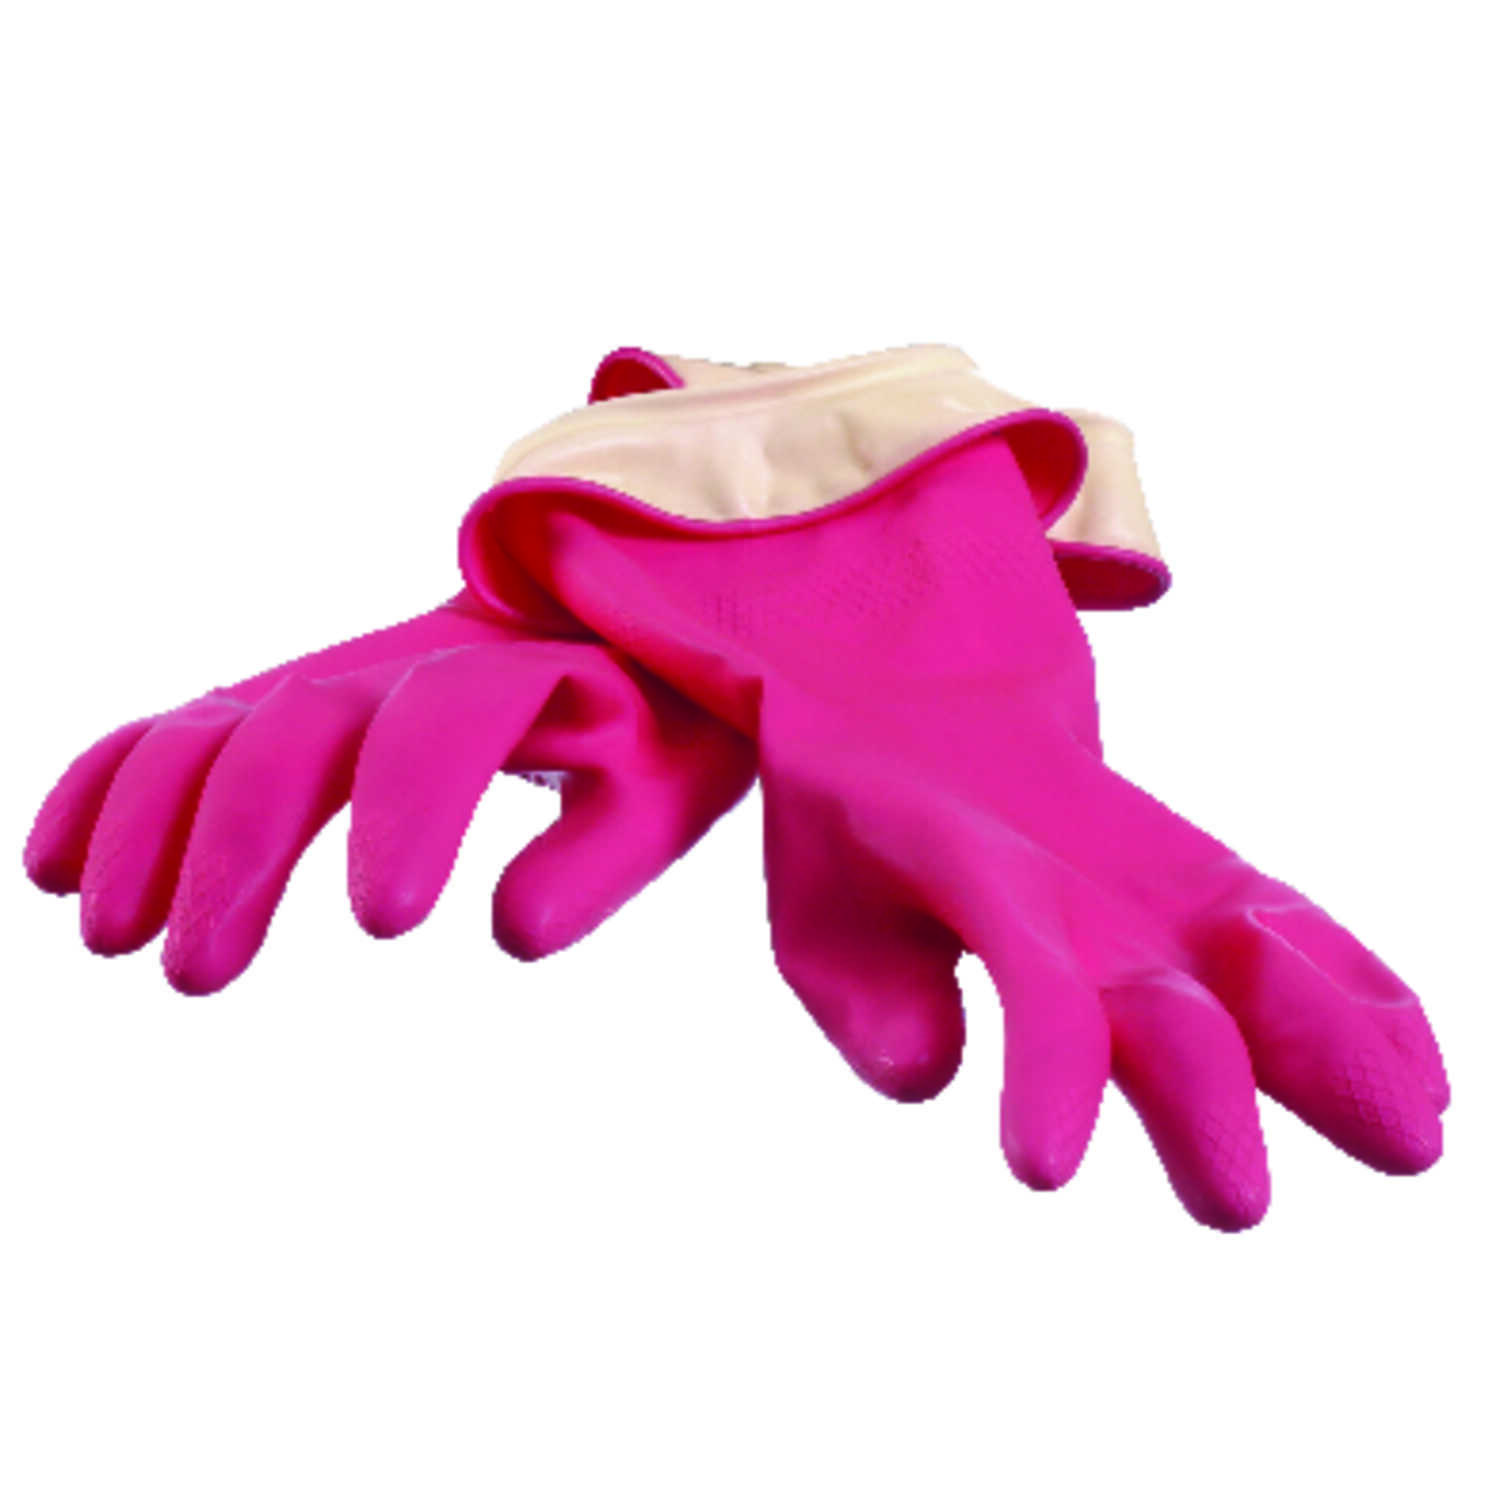 Casabella  Latex  Gloves  L  Pink  1 pk